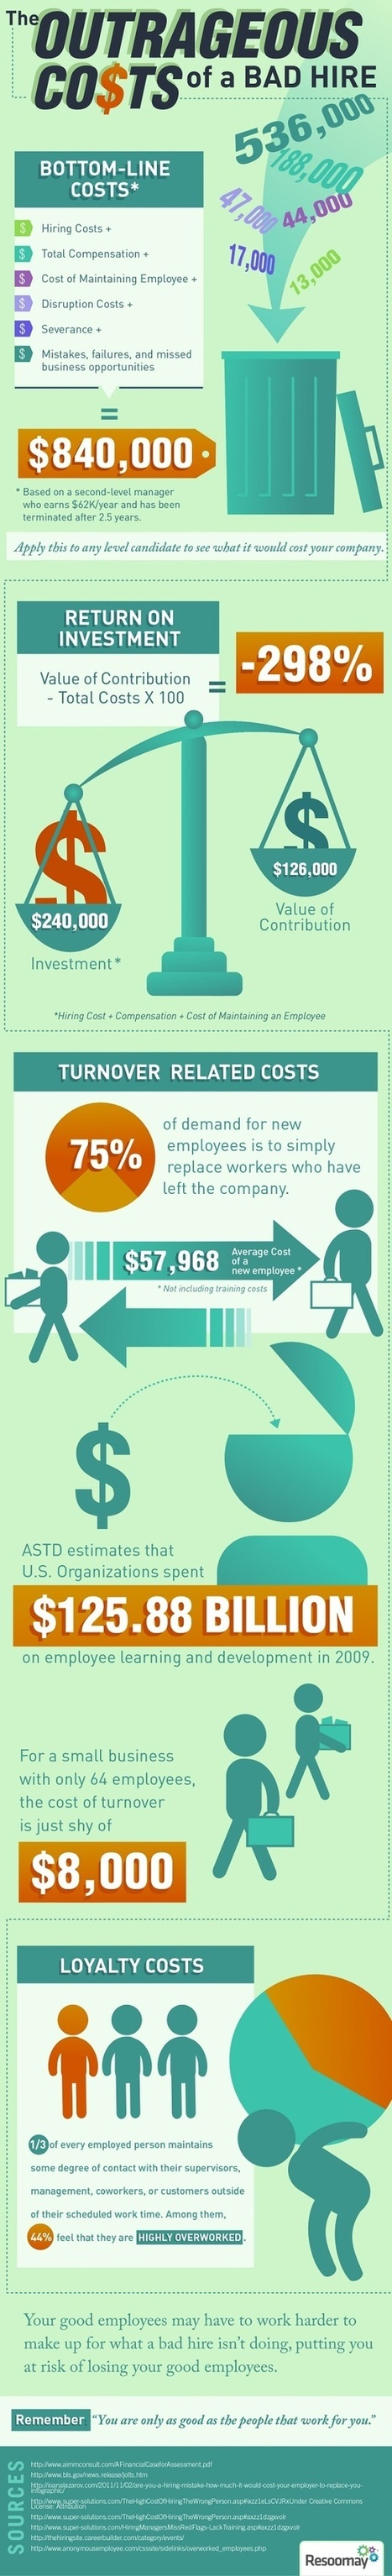 The Cost of a Bad Hire [infographic] | Employer branding | Scoop.it